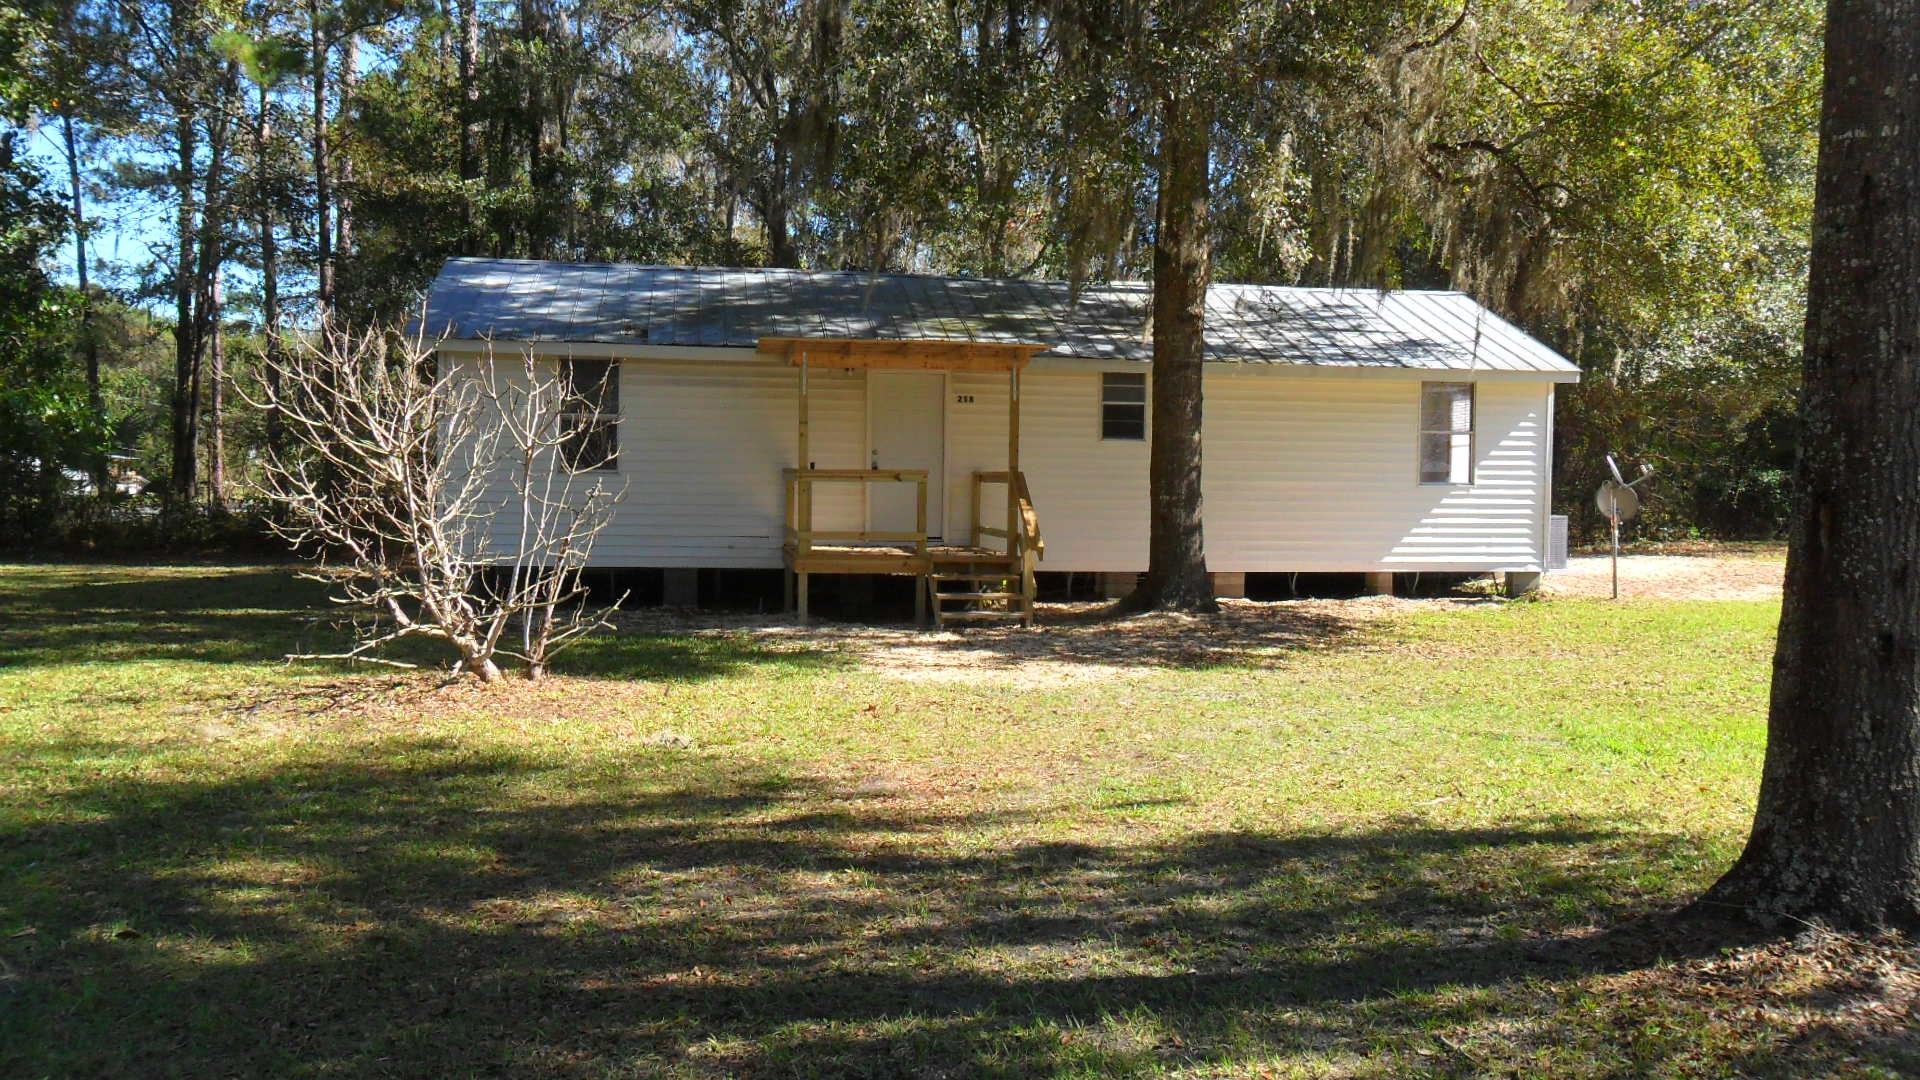 3BR/1BA ON 2.25 ACRES IN LAKE CITY, FL